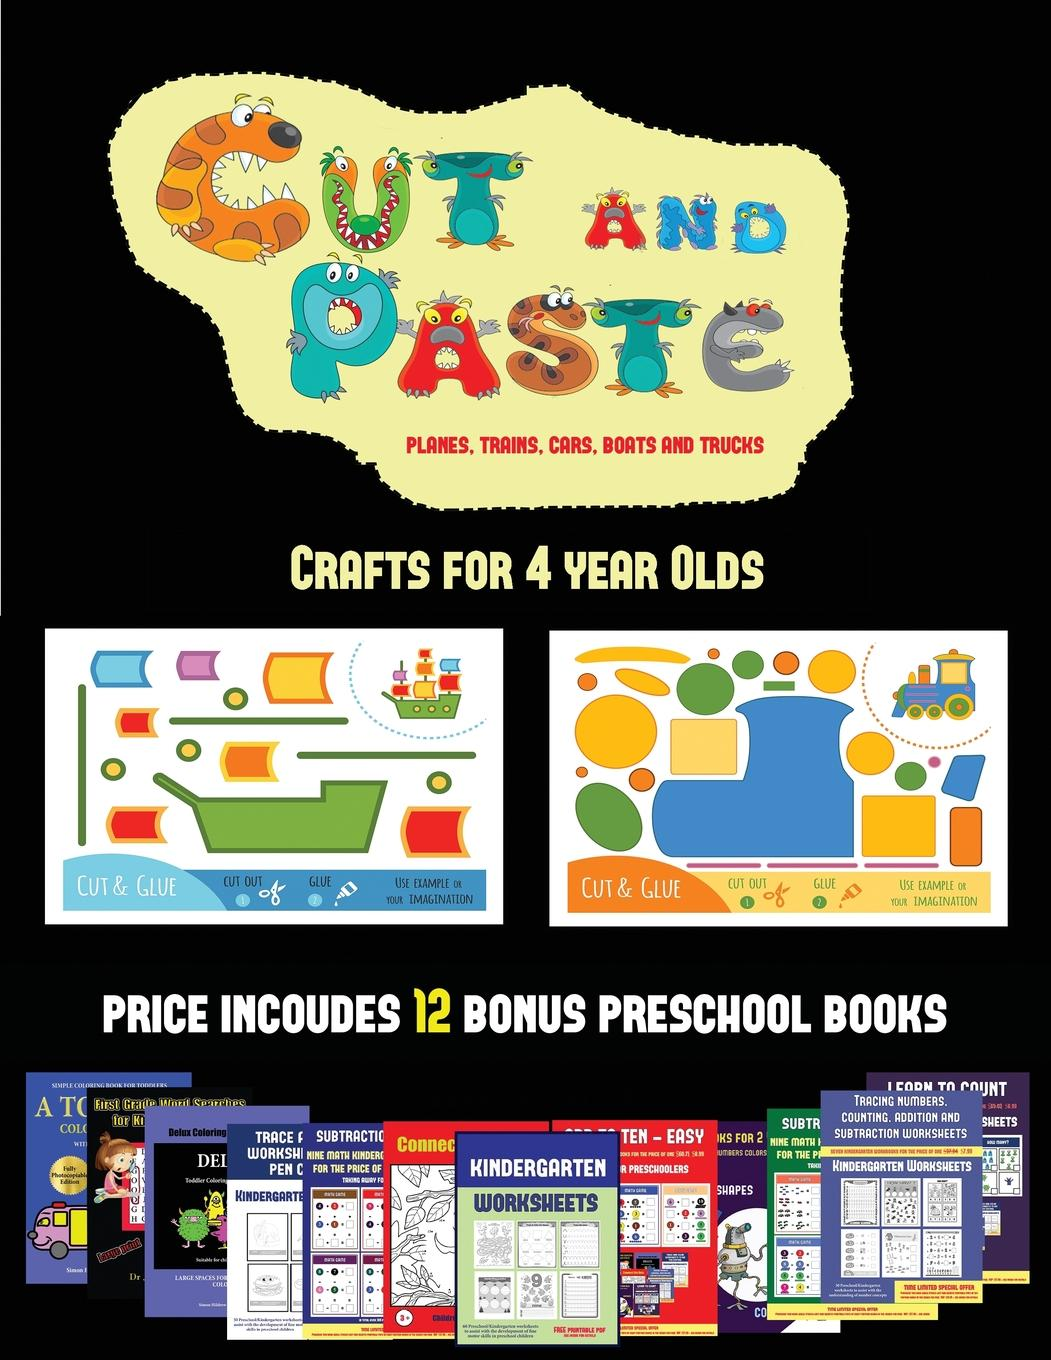 Crafts For 4 Year Olds Crafts For 4 Year Olds Cut And